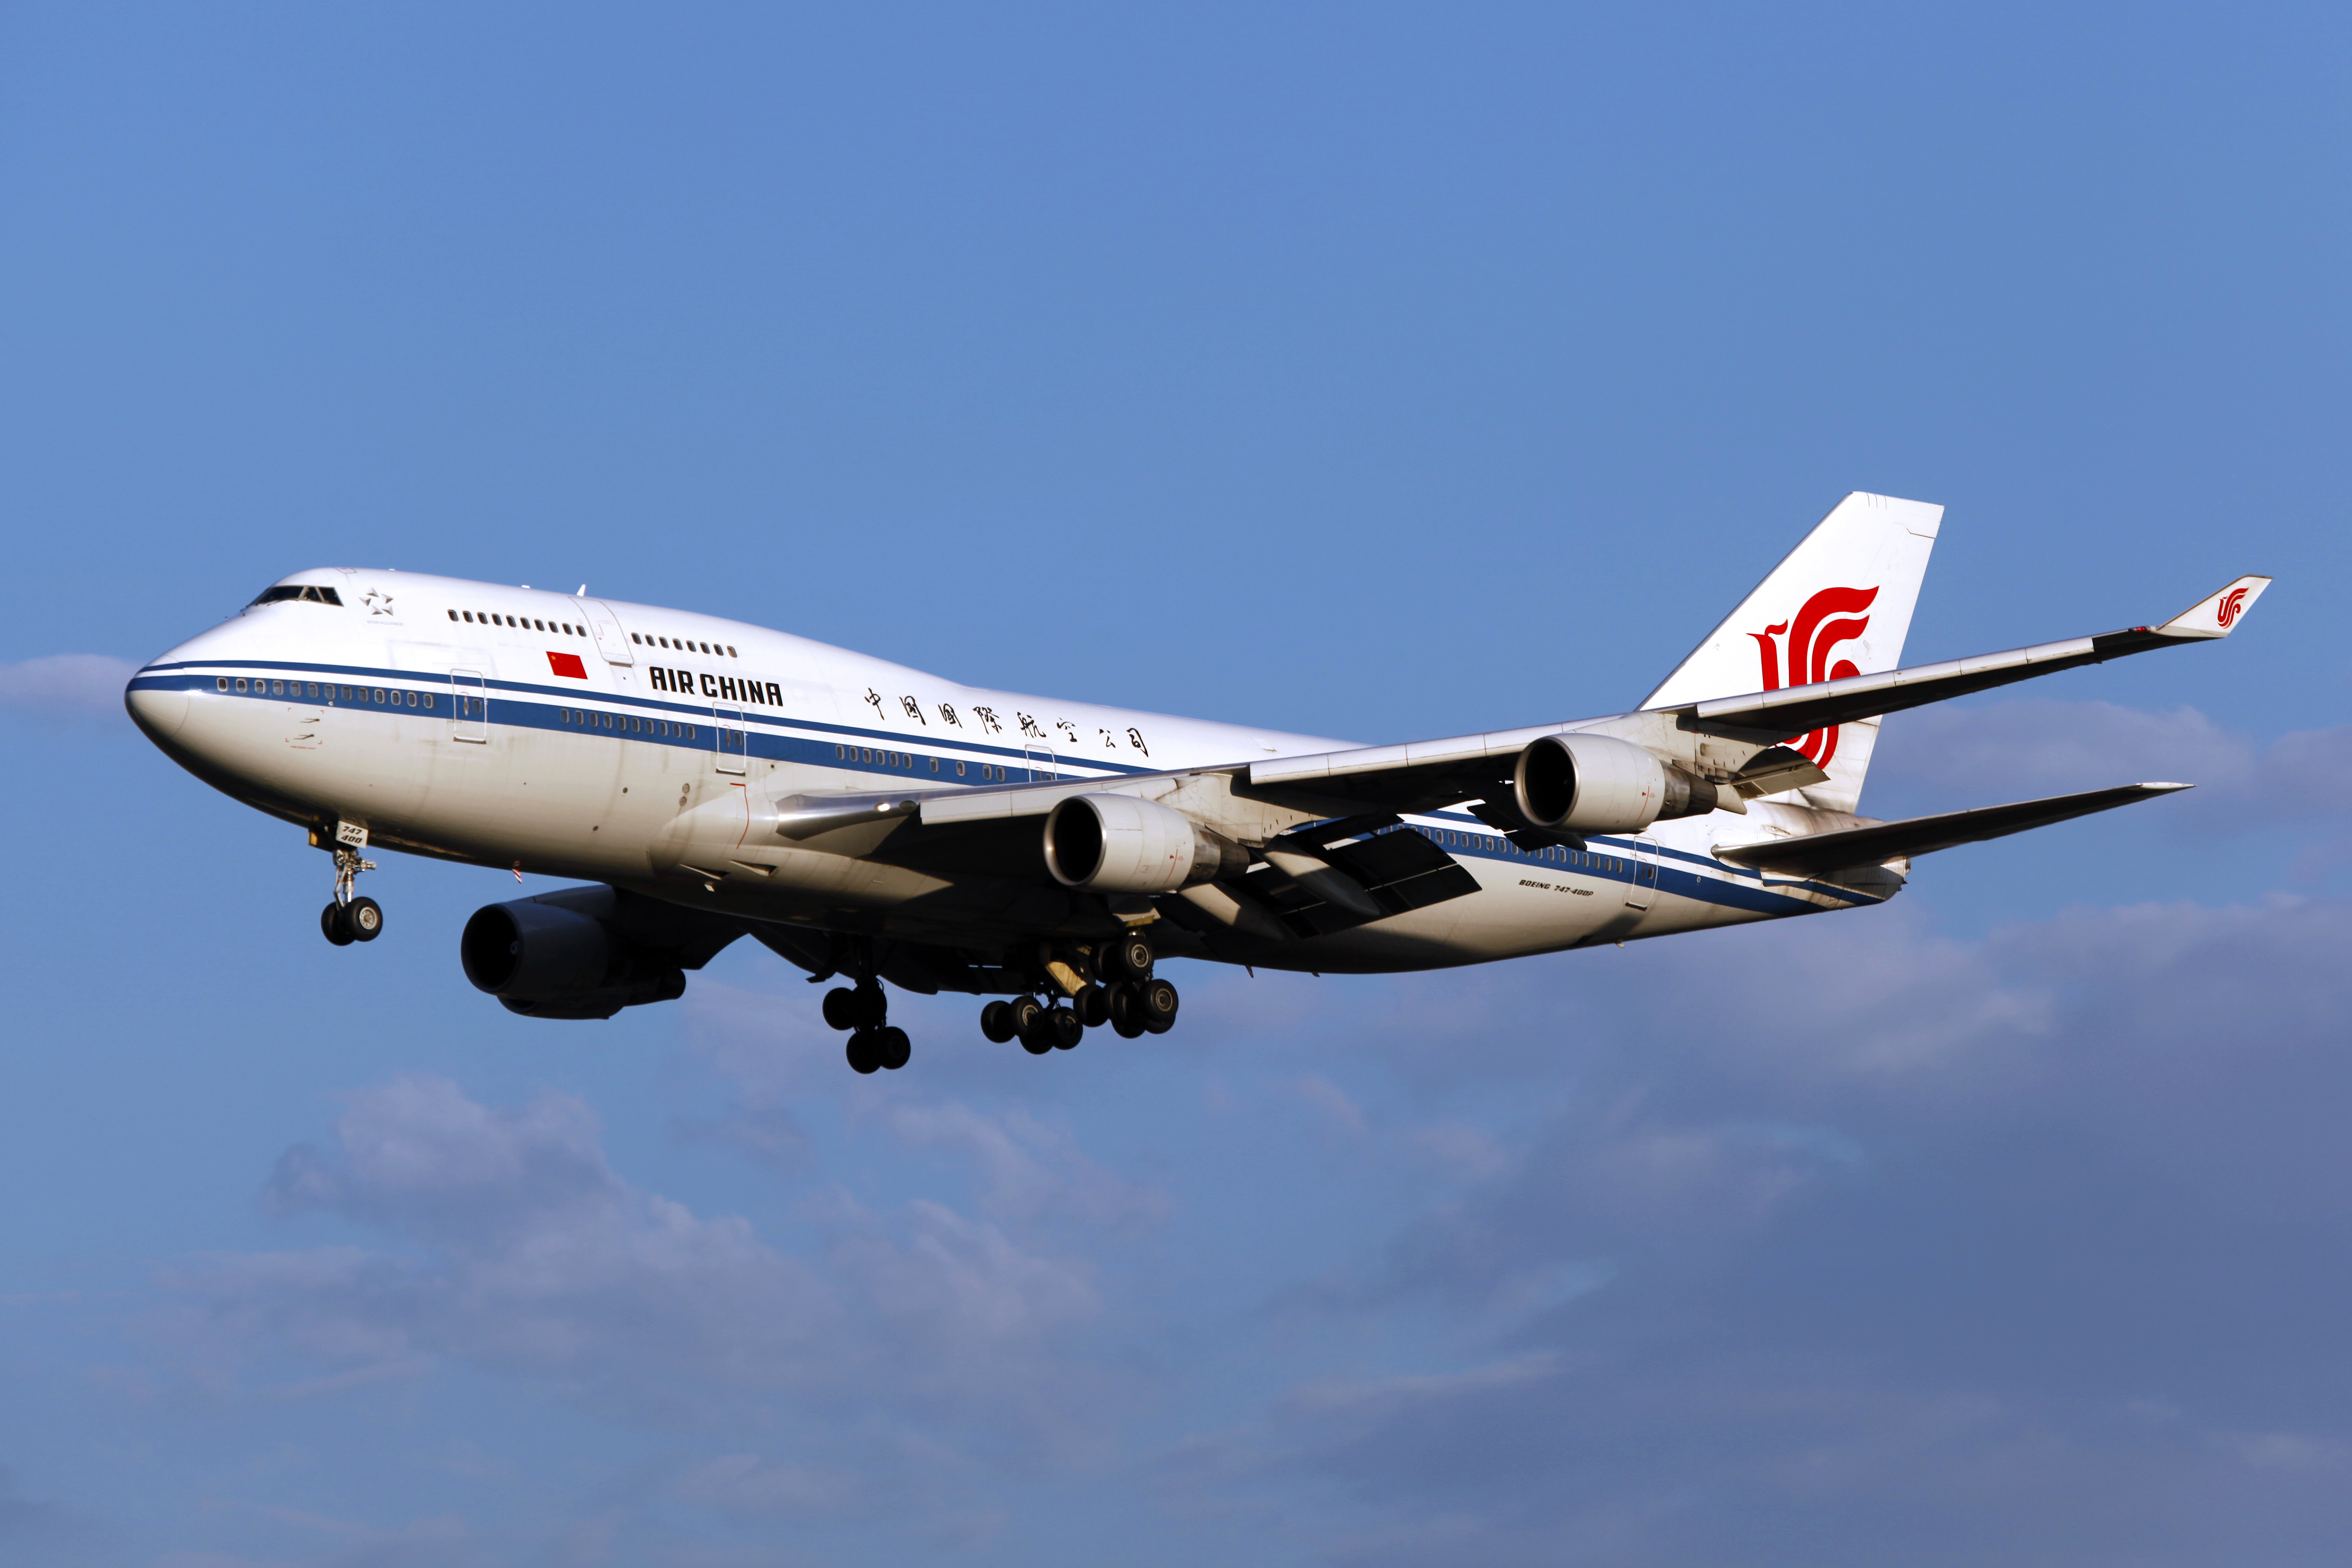 File:B-2443 - Air China - Boeing 747-4J6 - PEK (